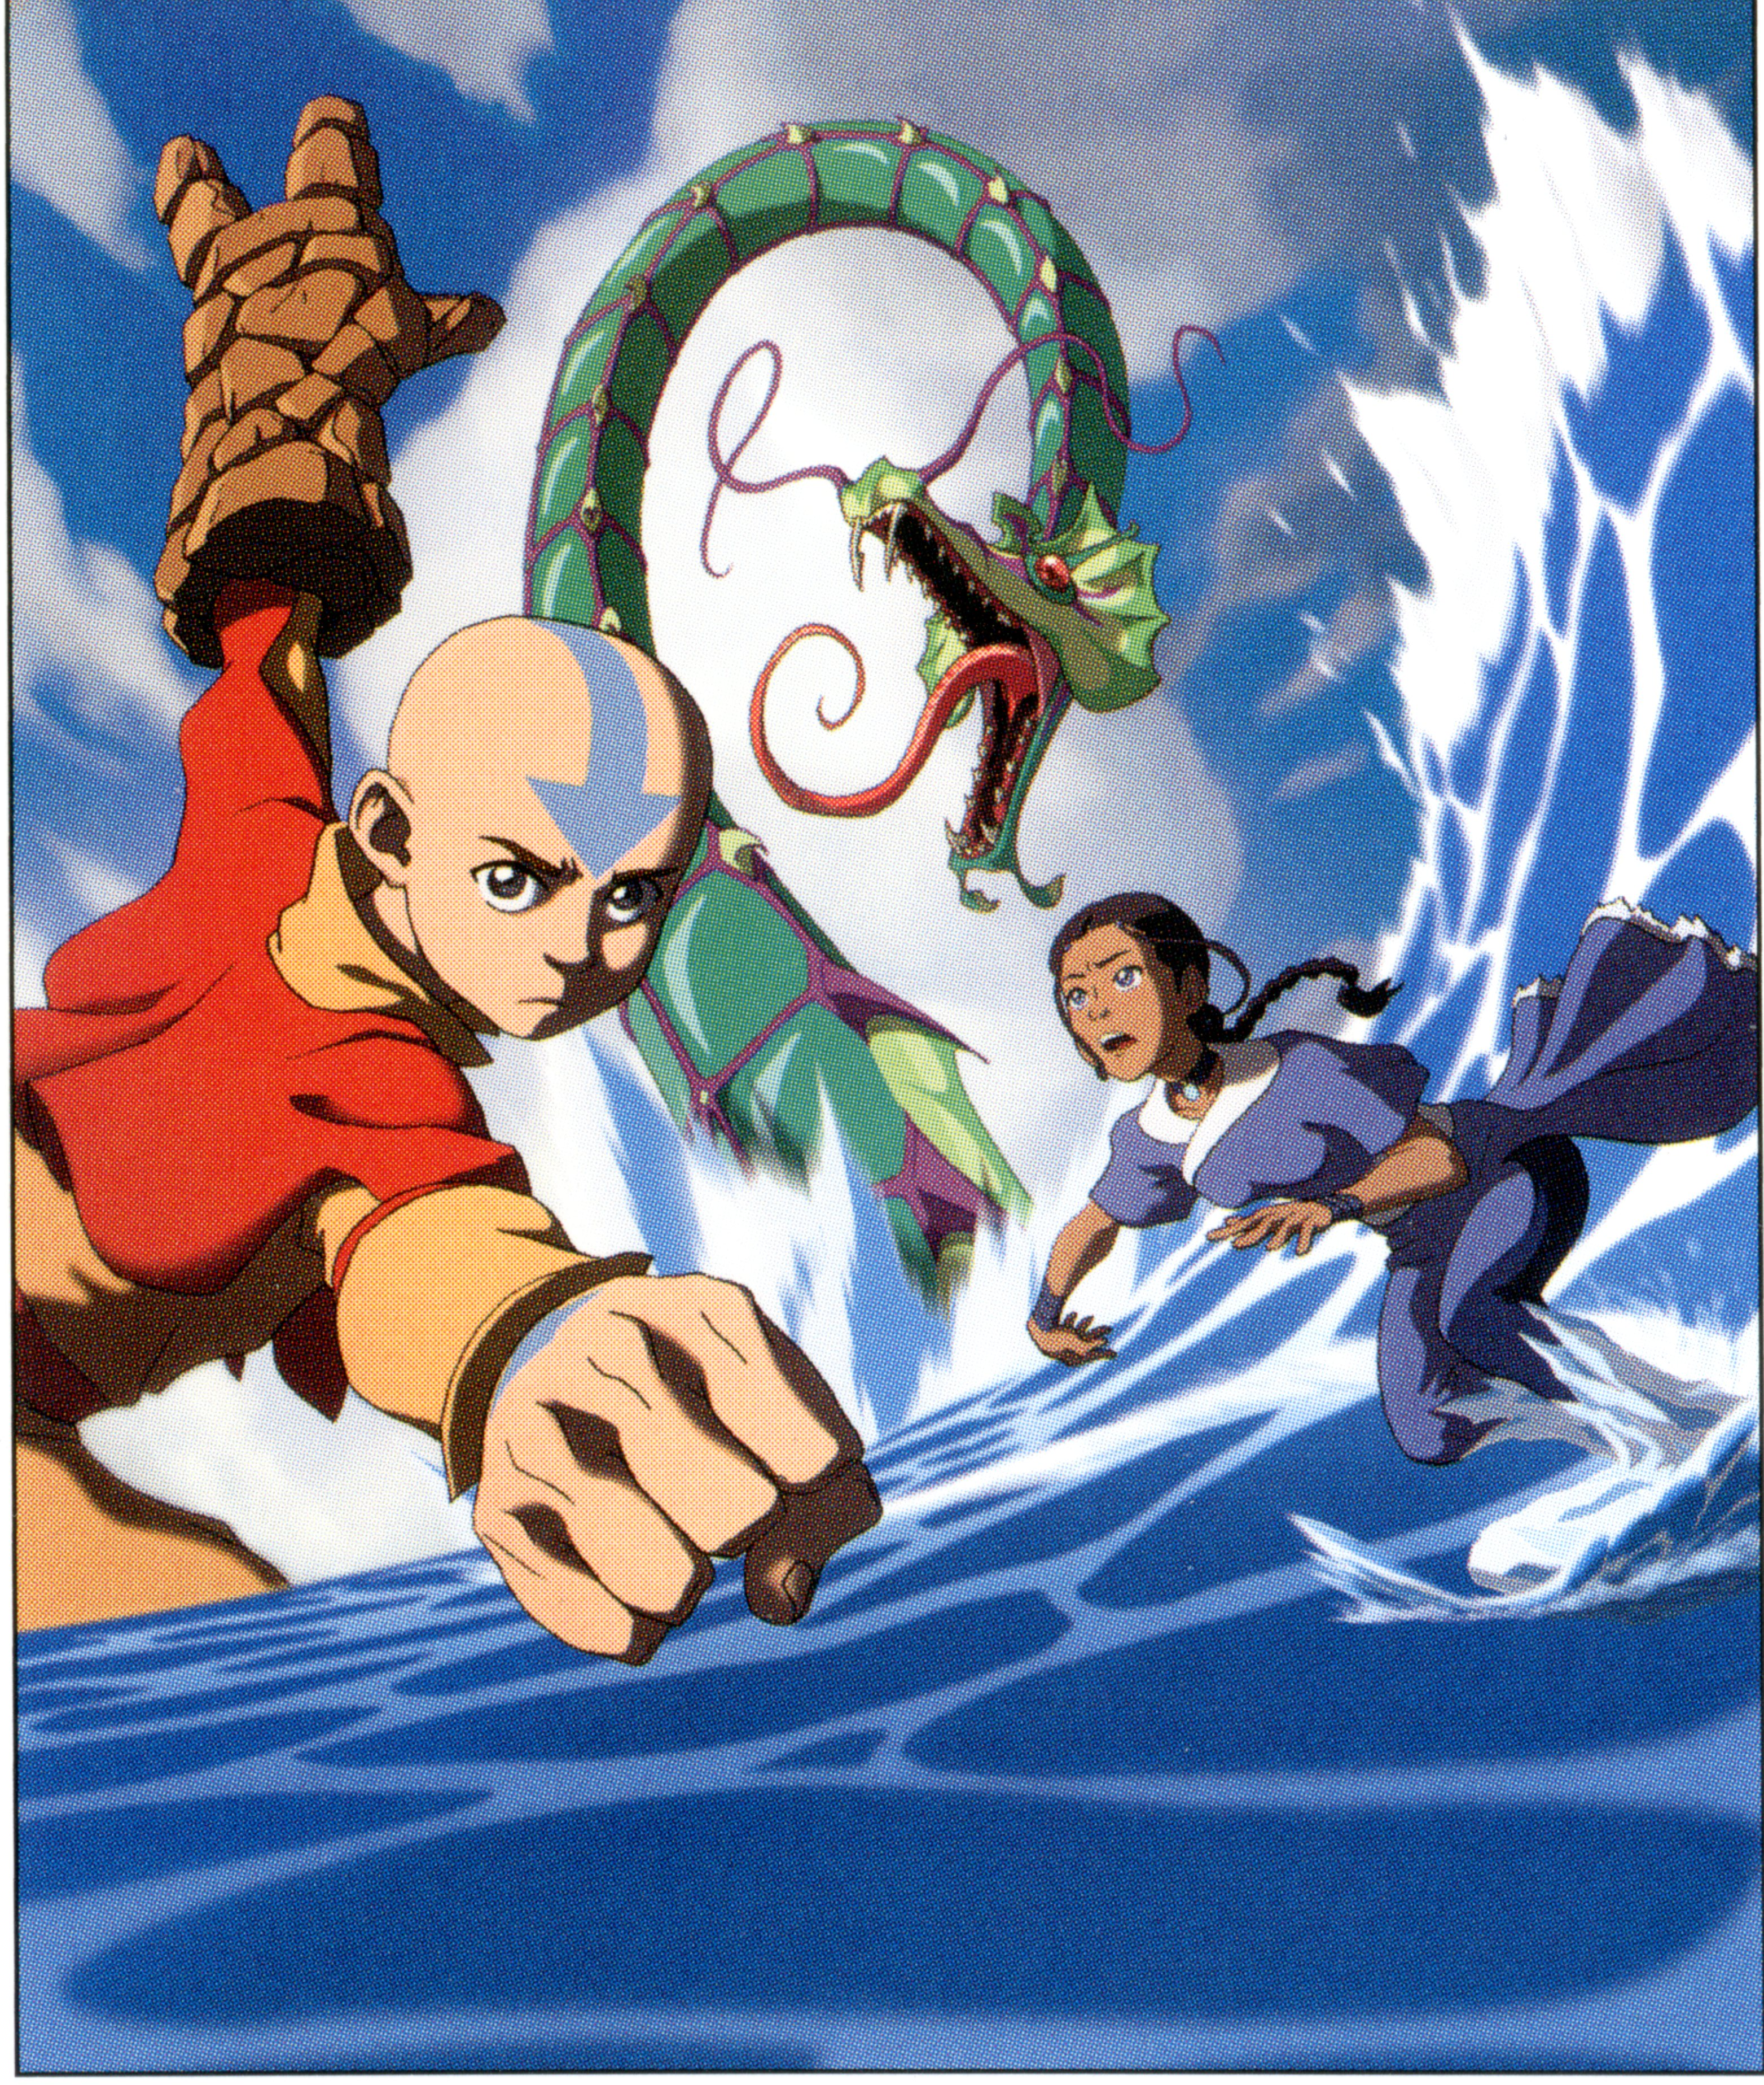 Avatar Airbender: ATLA: Season 1 Wrap Up (Spoiler Talk)